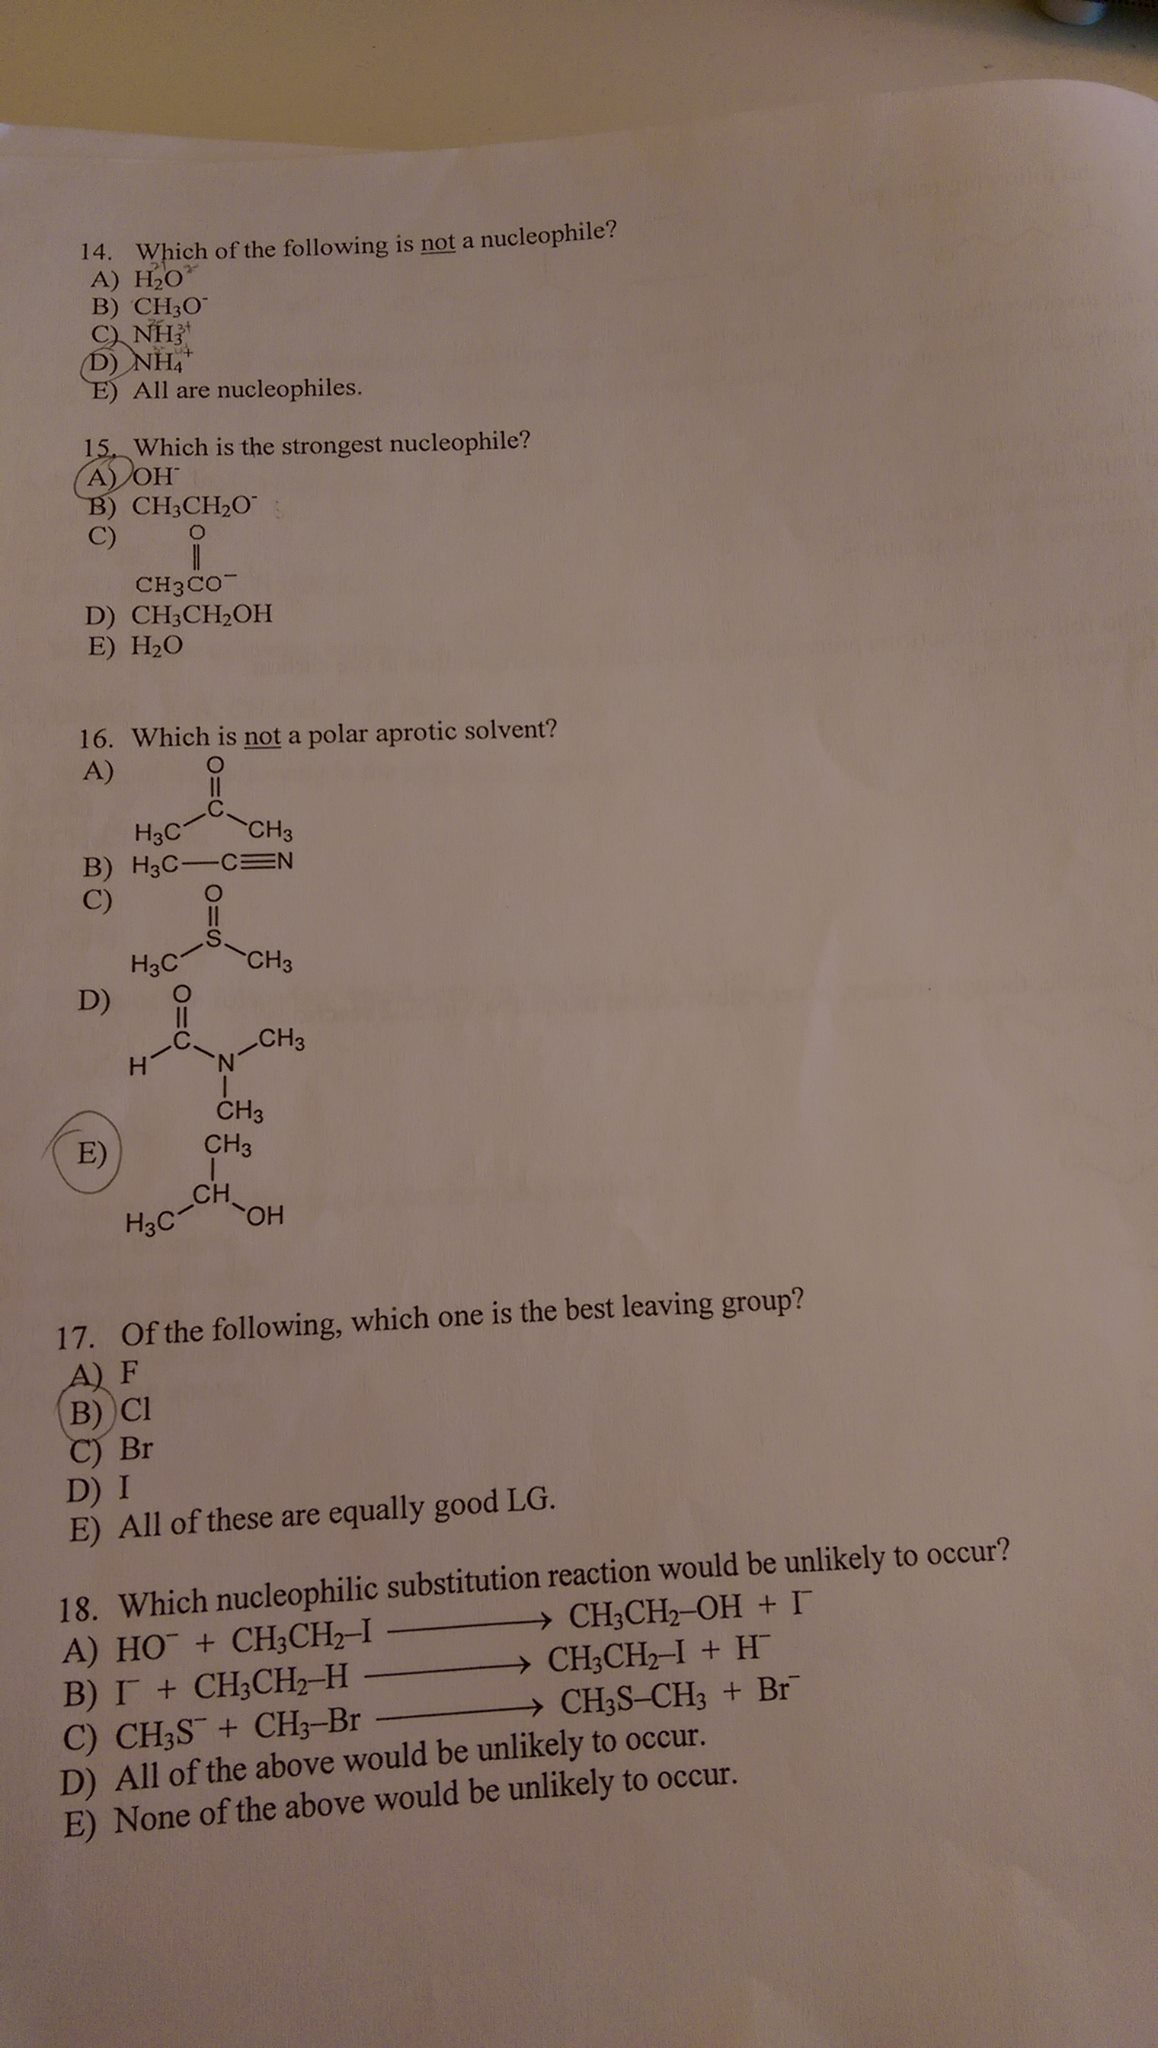 which of the following is not a nucleophile h o com plz help me q14 18 explain the reason thx